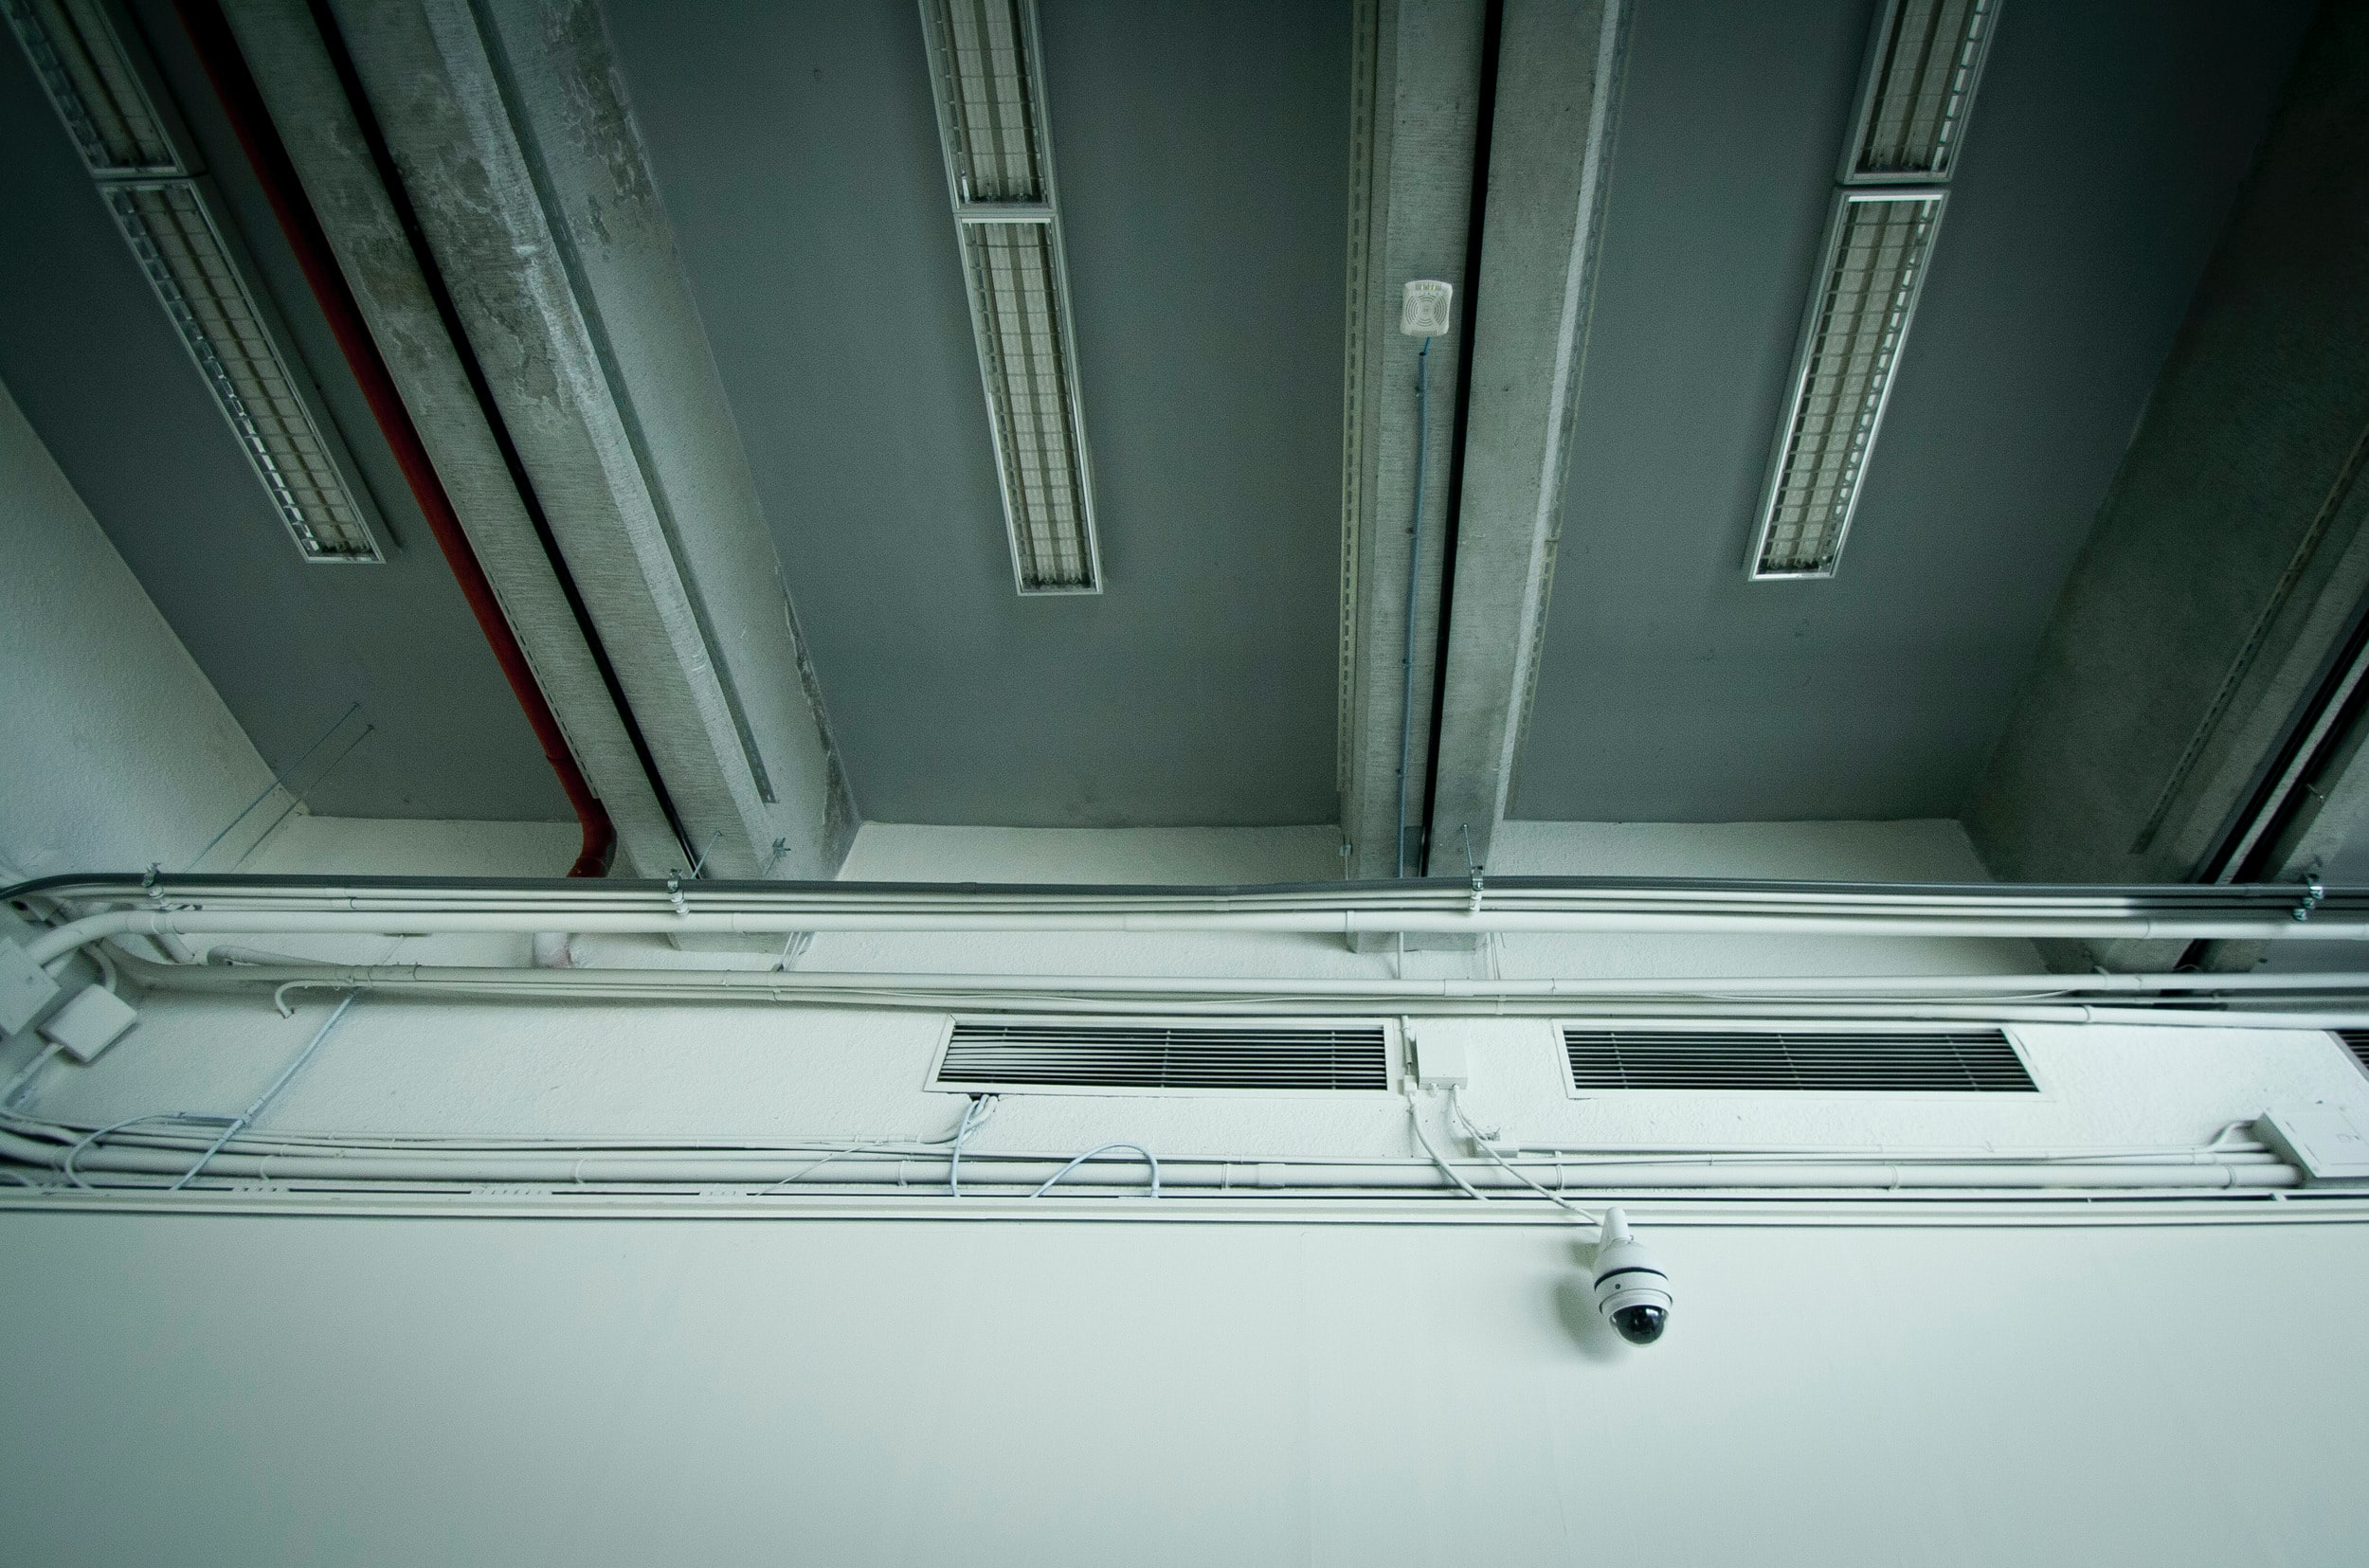 Tips To Increase the Airflow in Air Ducts